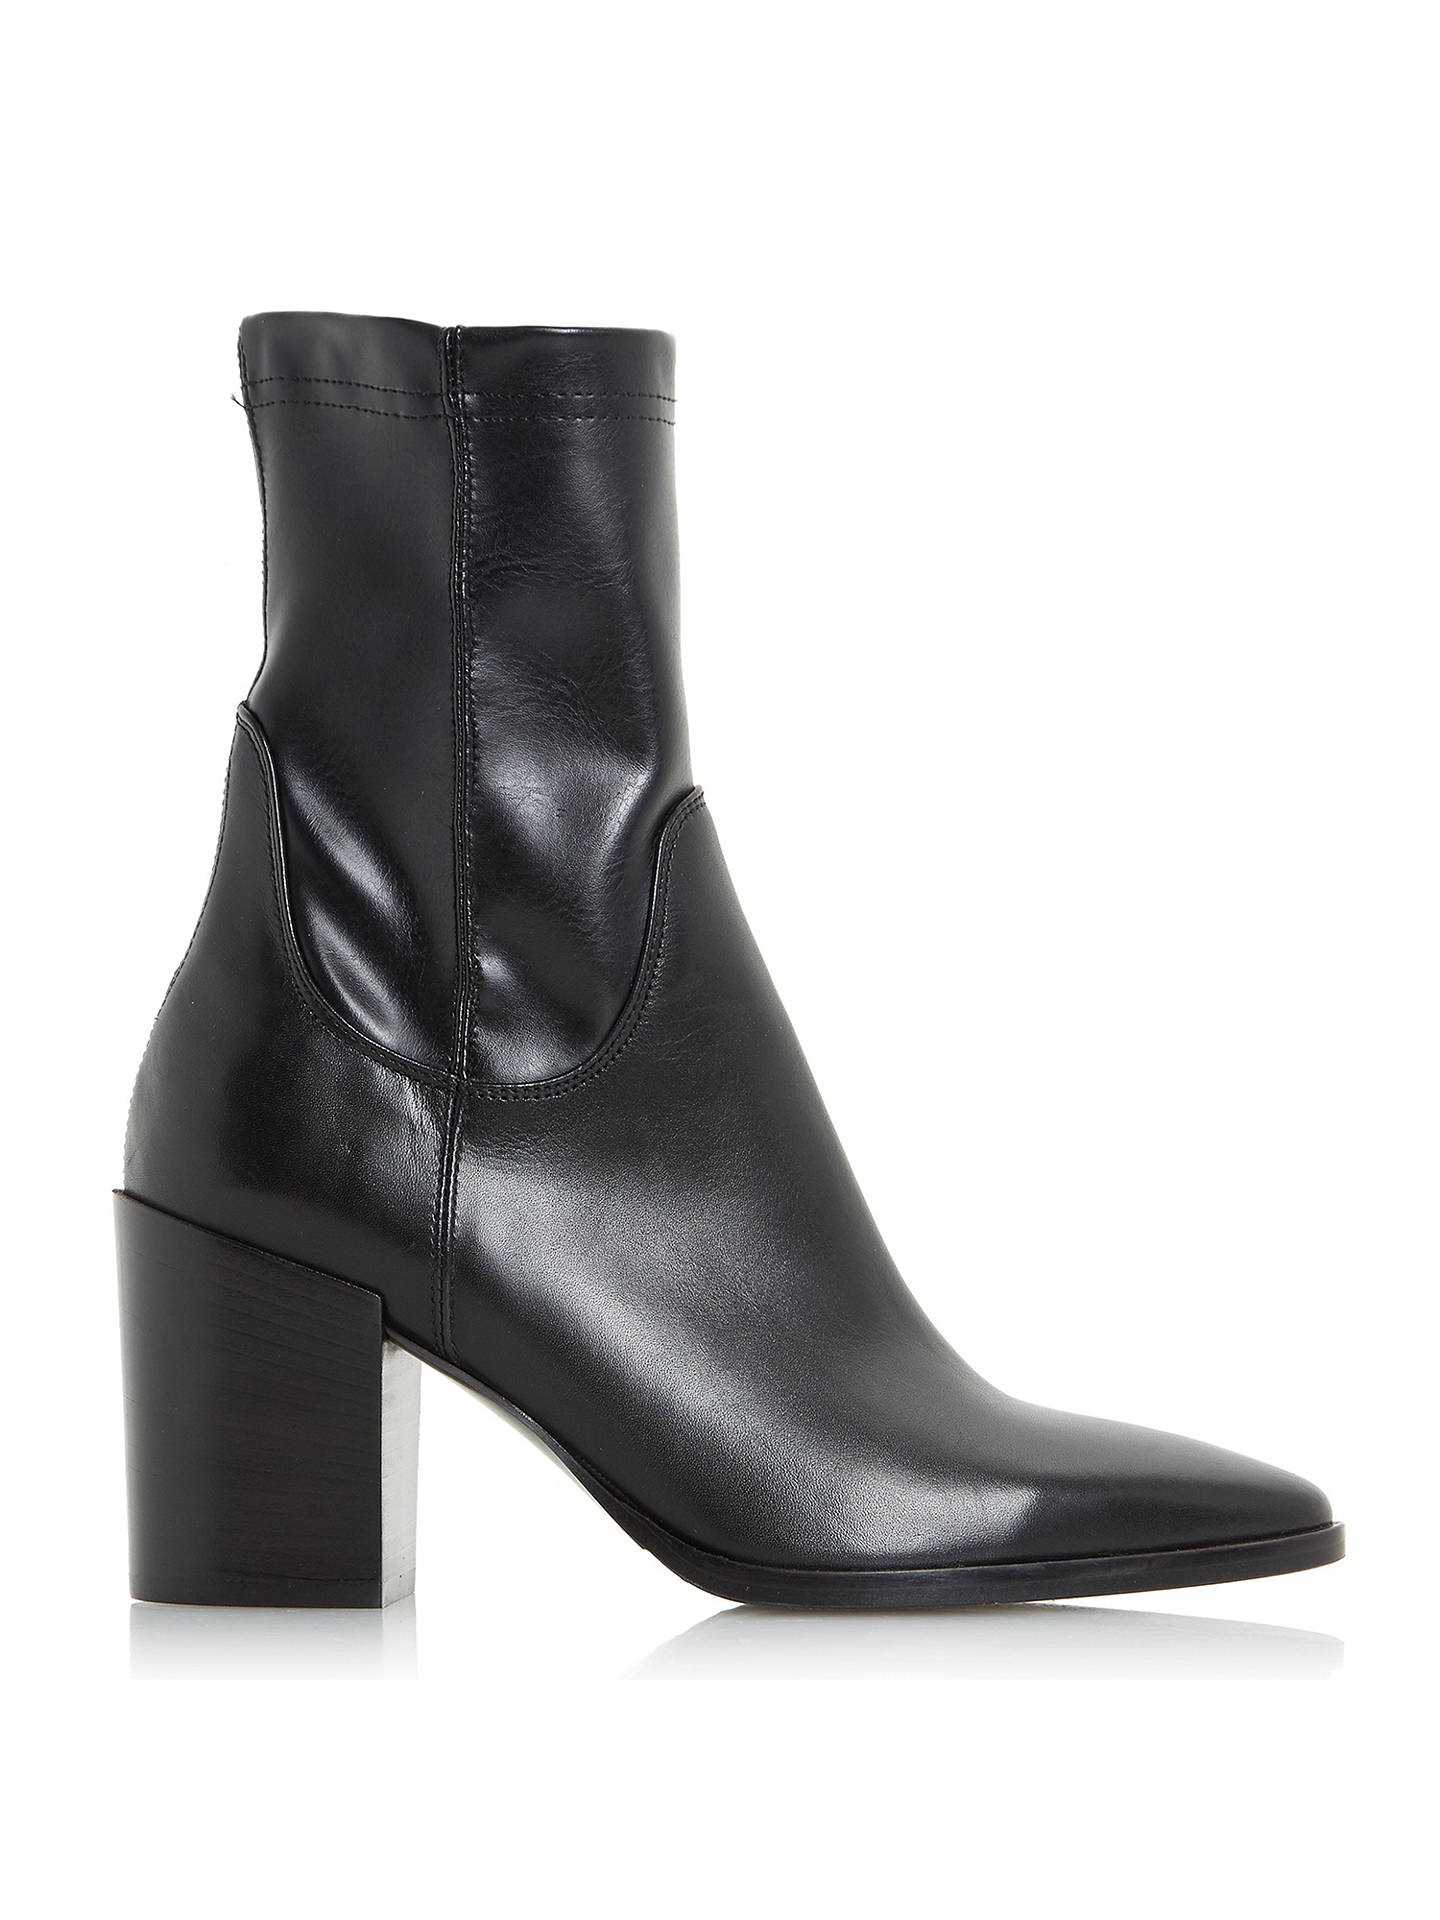 582941b0a12 Dune Black Padock Pointed Toe Ankle Sock Boots at John Lewis & Partners